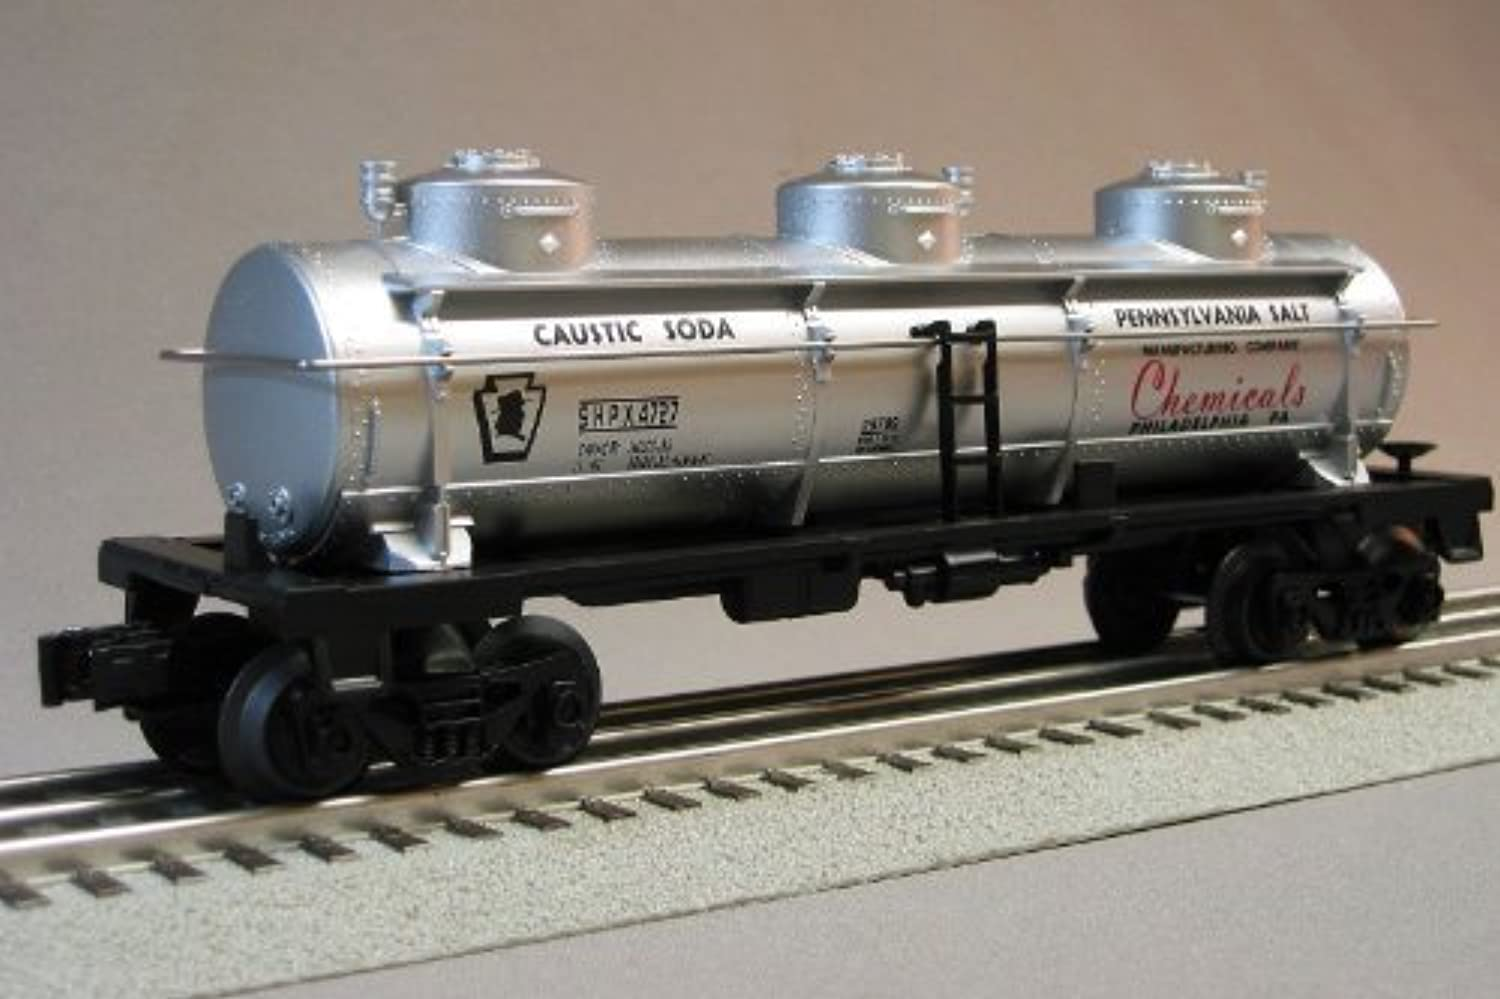 LIONEL PRR THREE DOME TANKER PENNSYLVANIA SALT CO 4727 train 6-30233 tank auto 6-29789 by Lionel